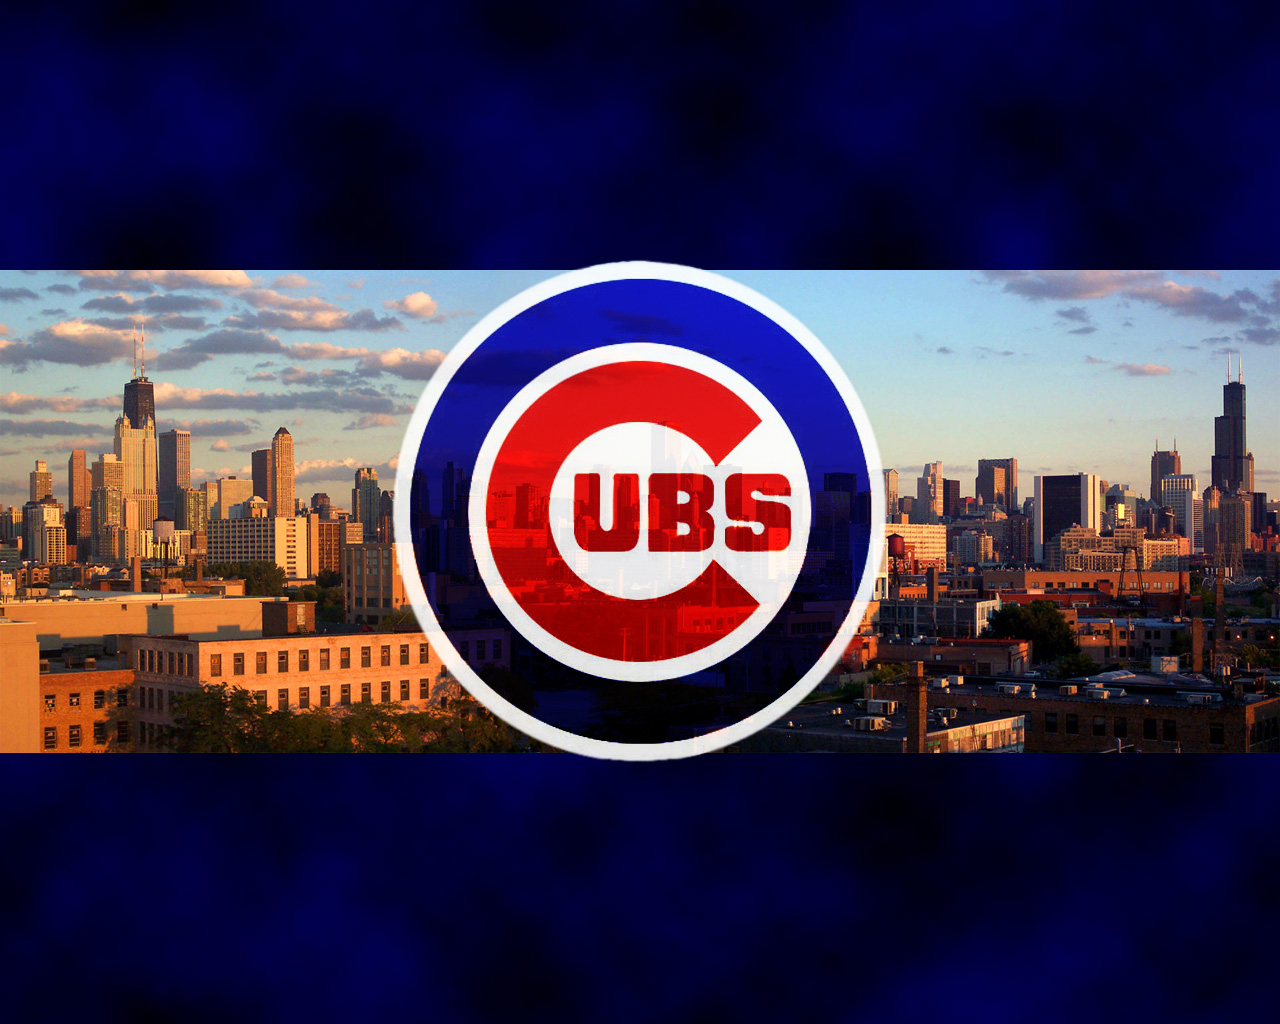 Chicago Cubs Wallpaper HD - WallpaperSafari